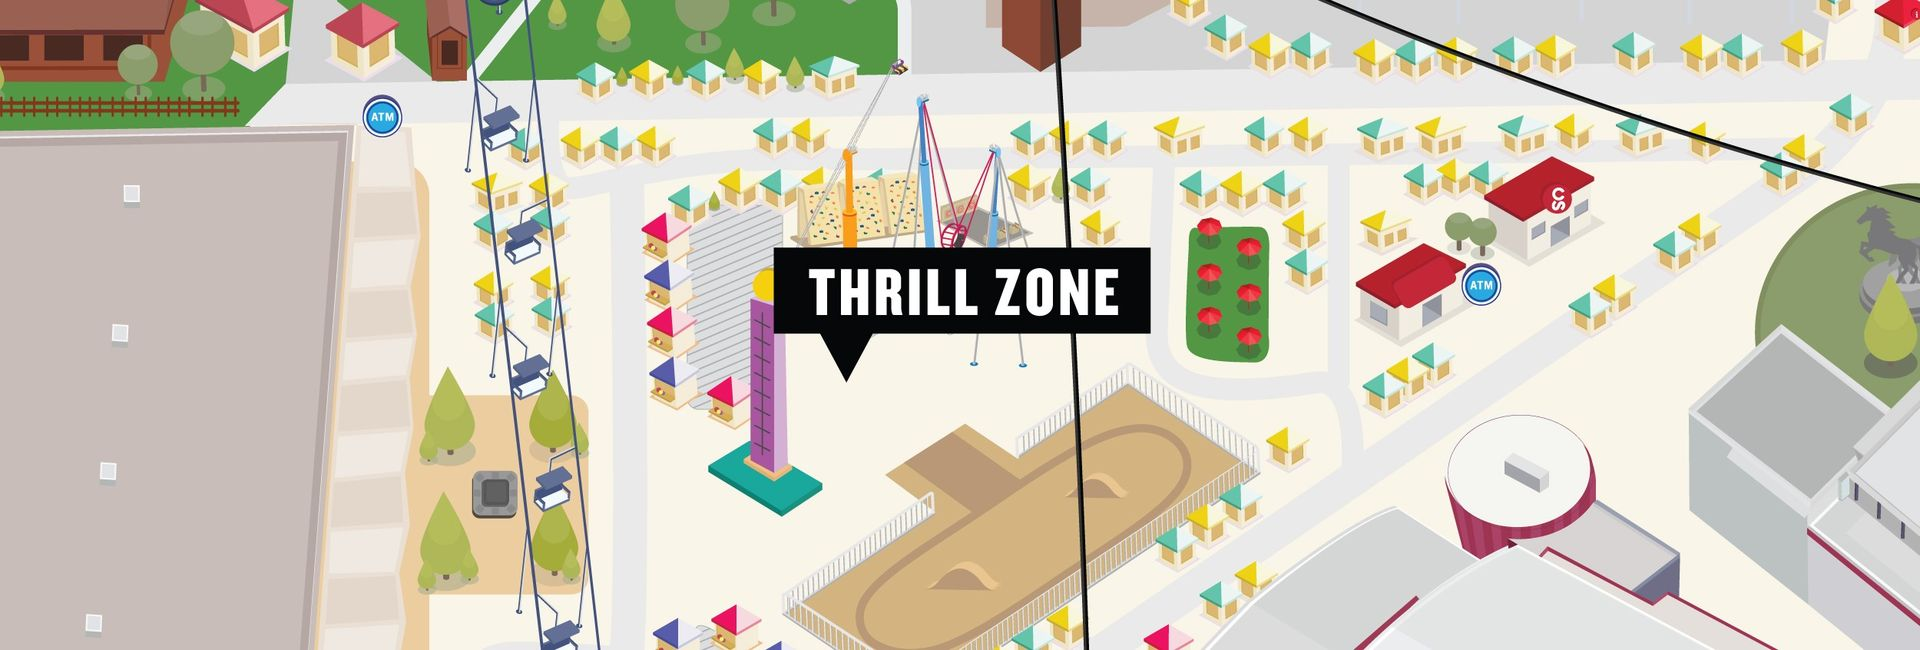 Thrill Zone Calgary Stampede July 3 12 2020